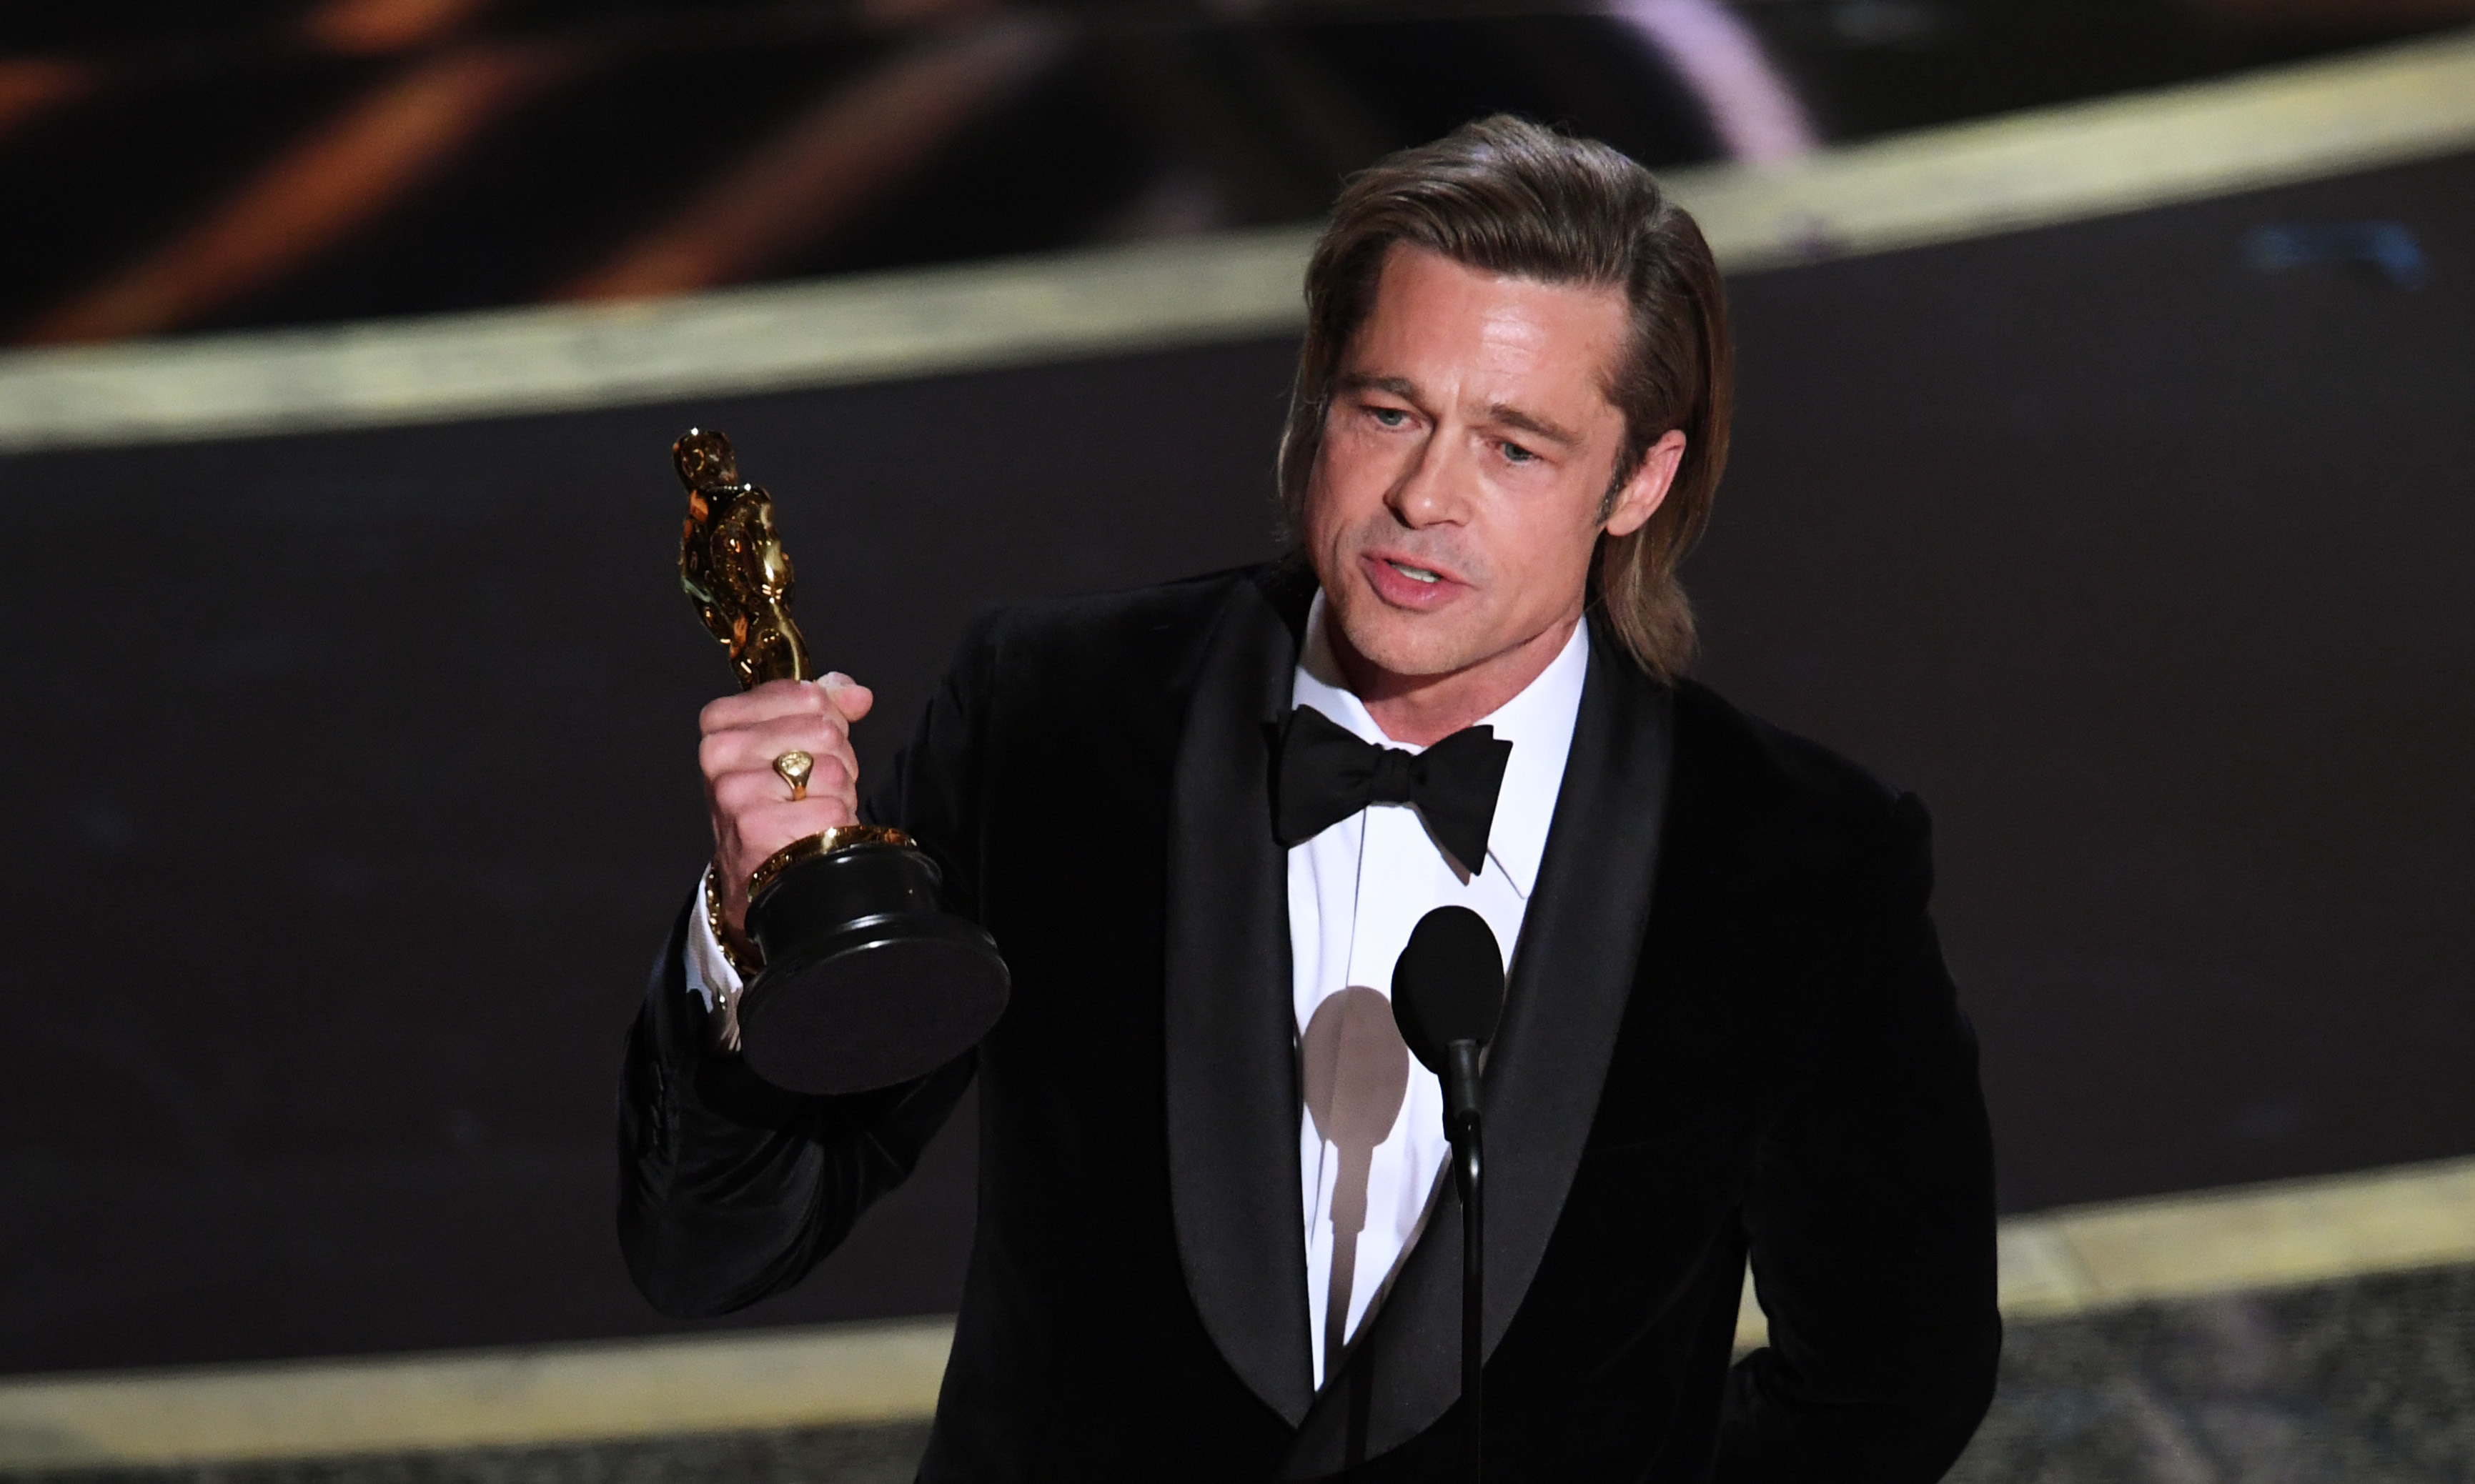 The Oscars 2021 will be televised, not held virtually